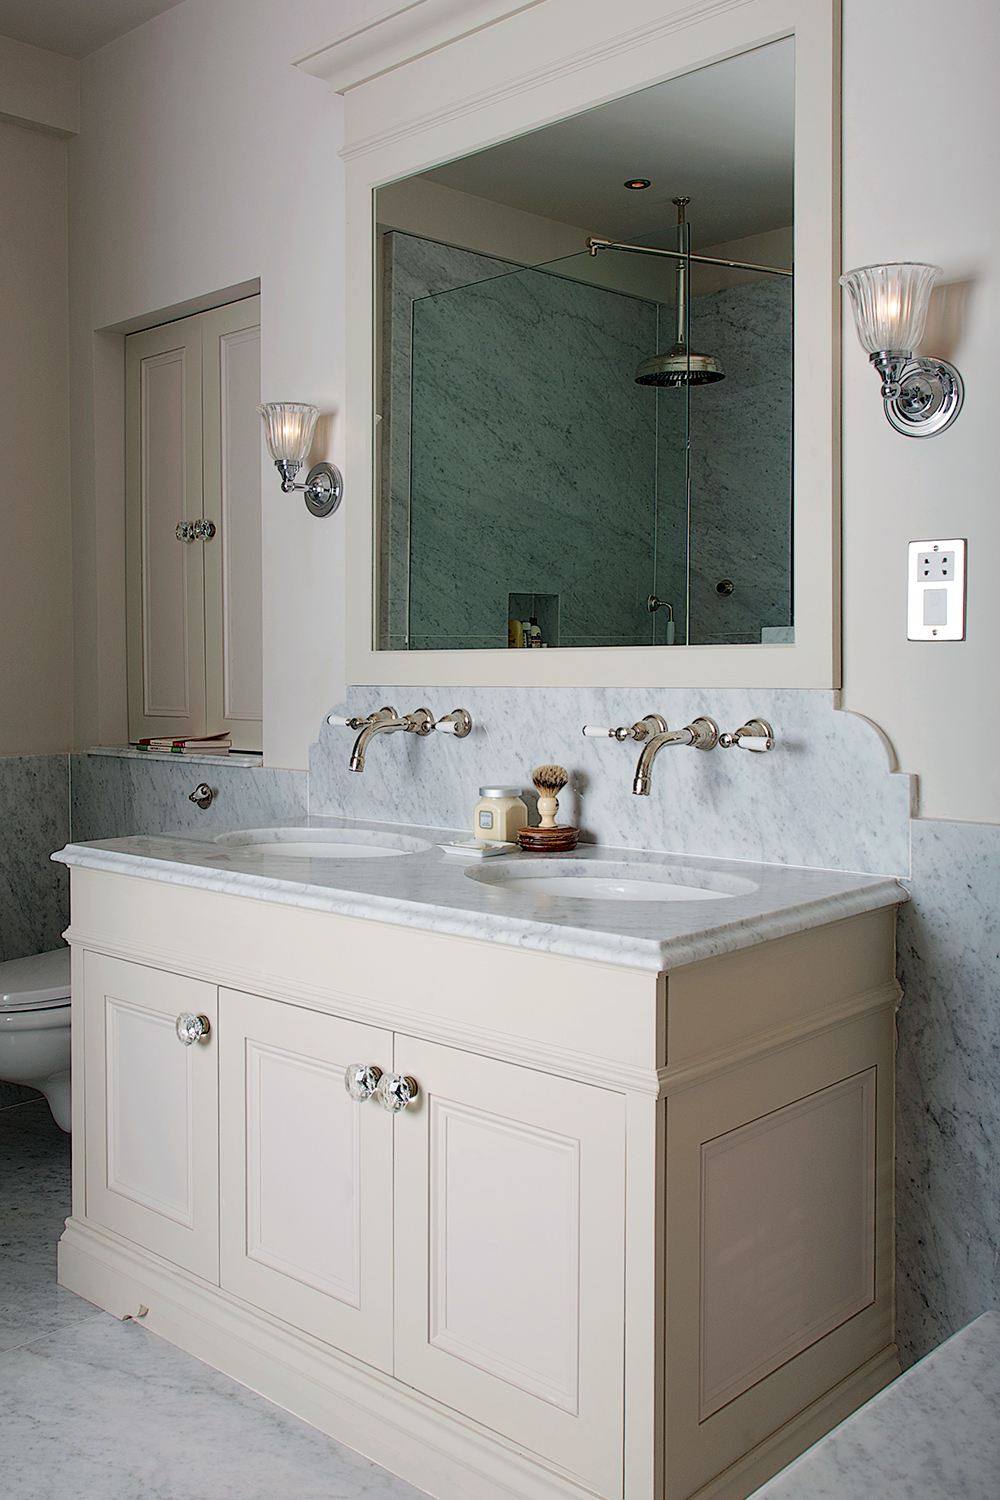 Bespoke Charlie Kingham bathroom double sink unit in cream with marble worktops and wall mounted taps in chrome.